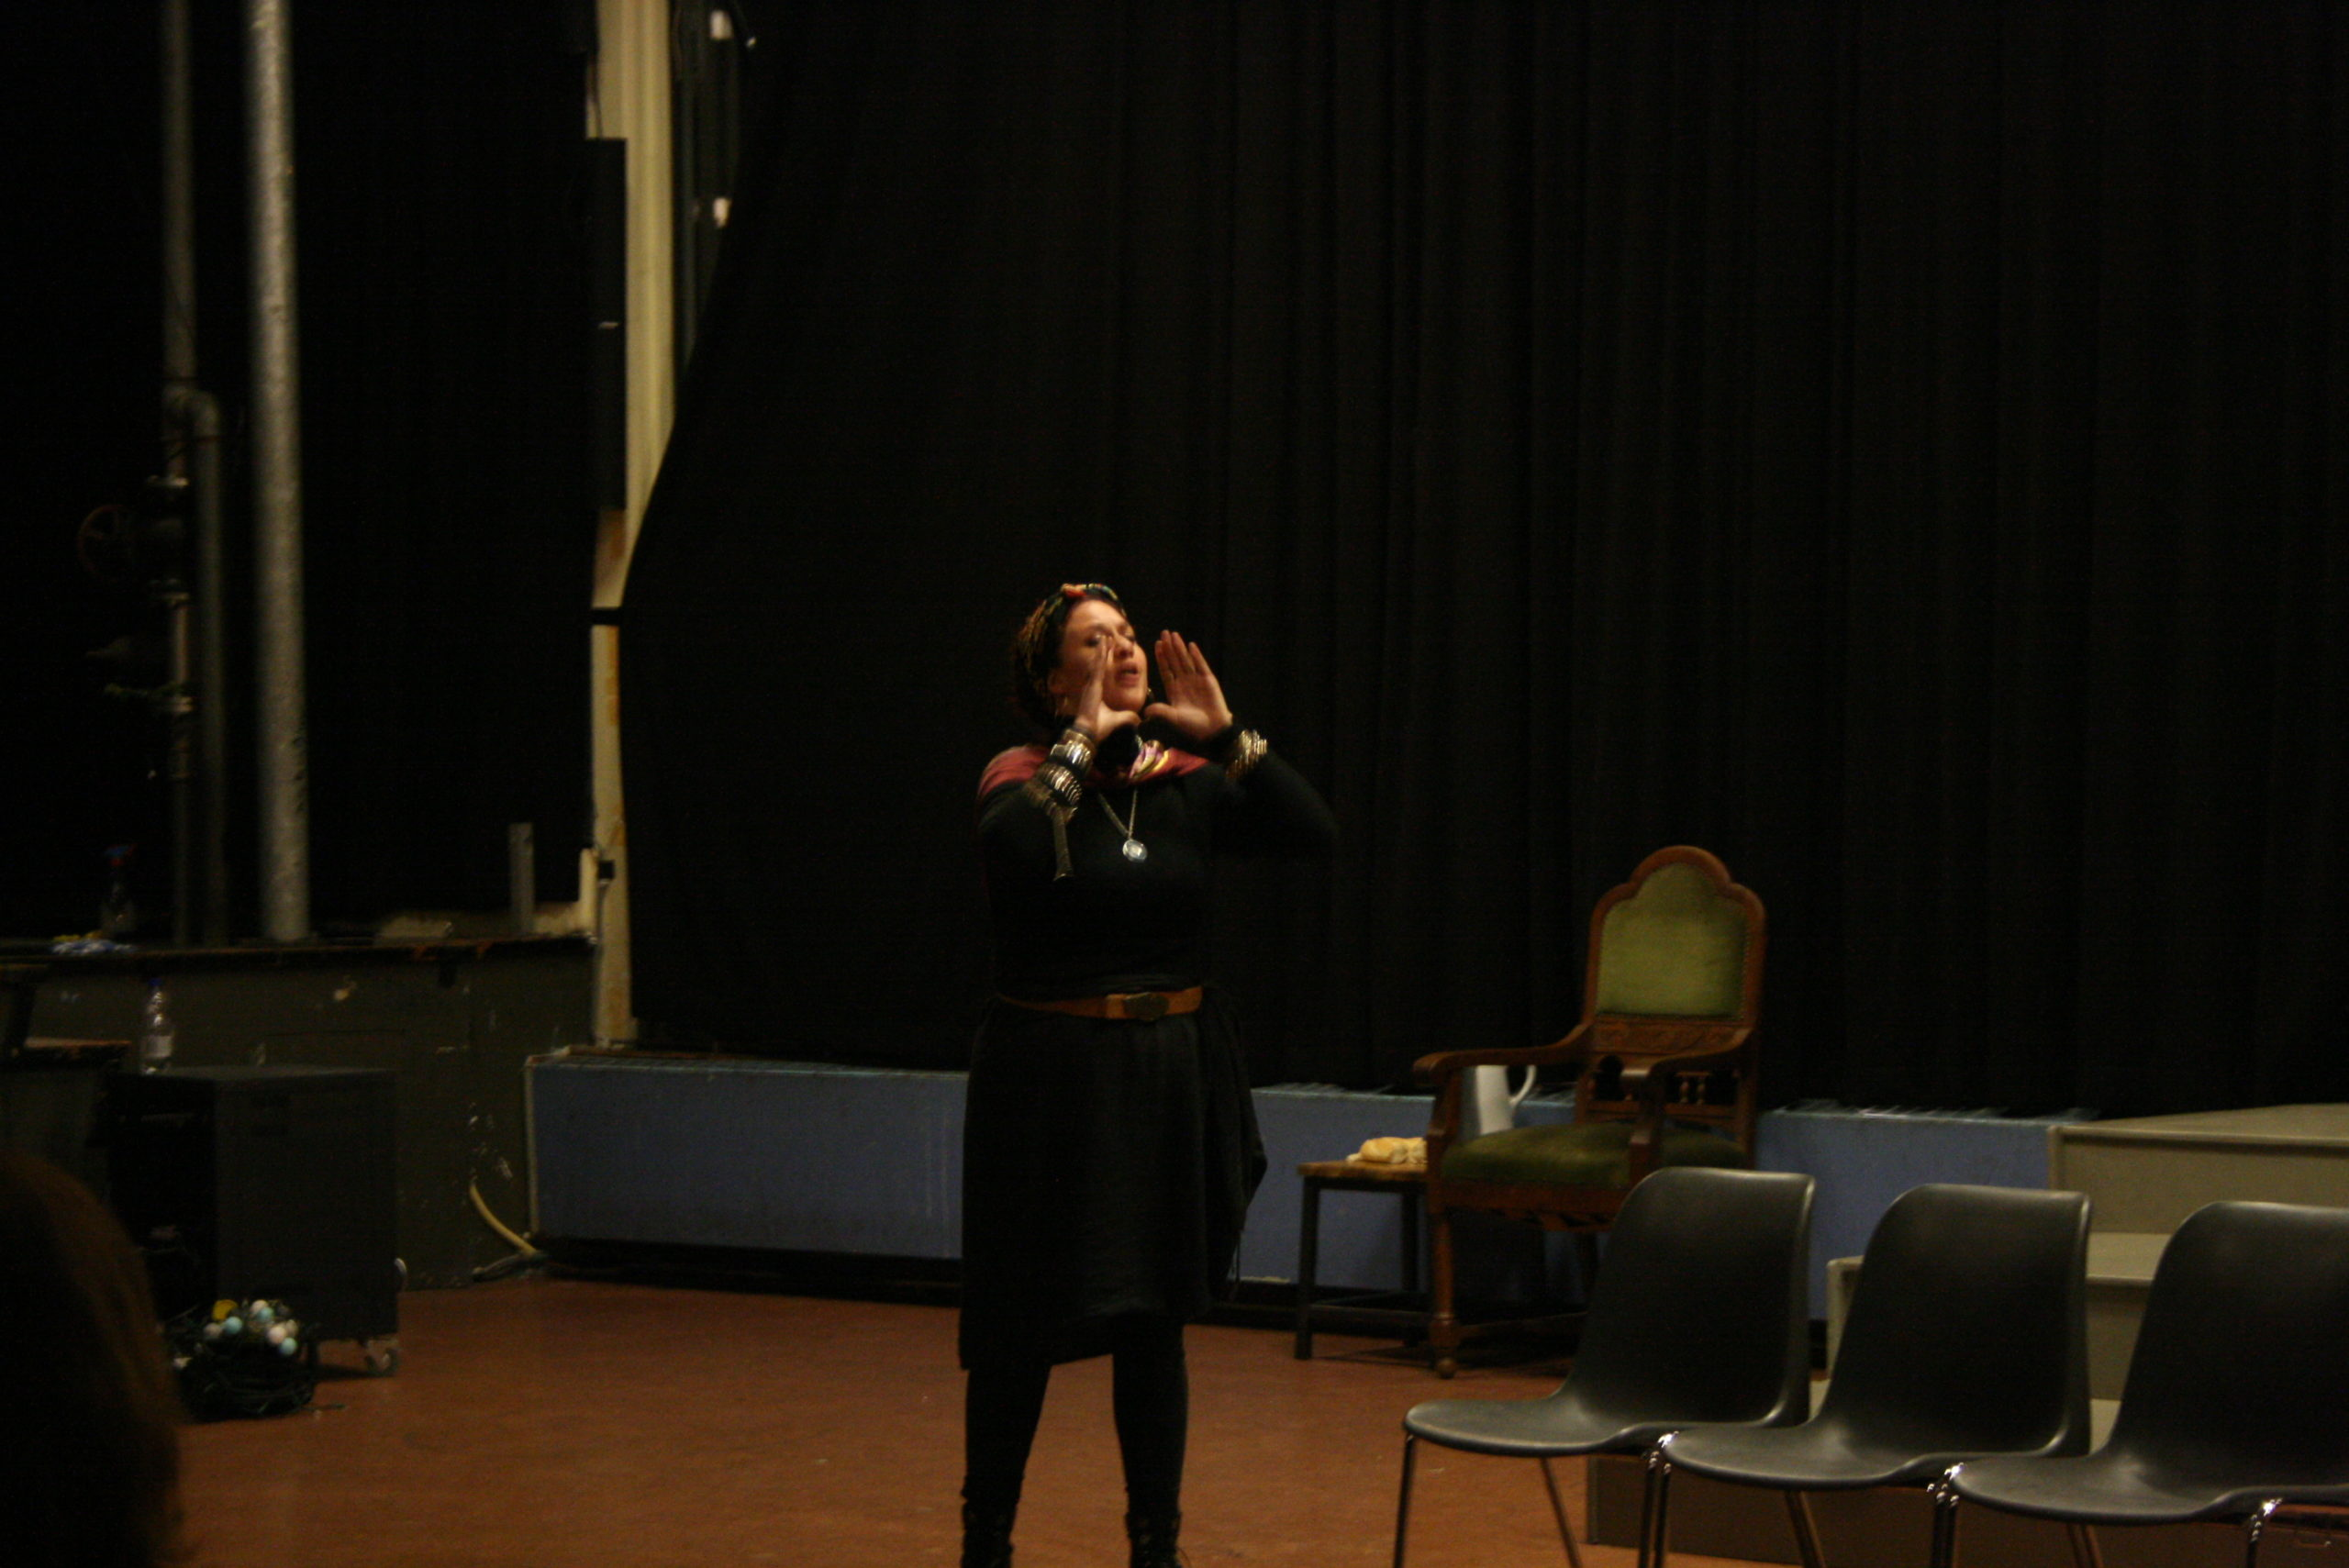 """Photo from the show """"Skin of our Teeth"""". A female actor on stage, dressed mostly in black, has her hands in front of her mouth like she's calling someone"""